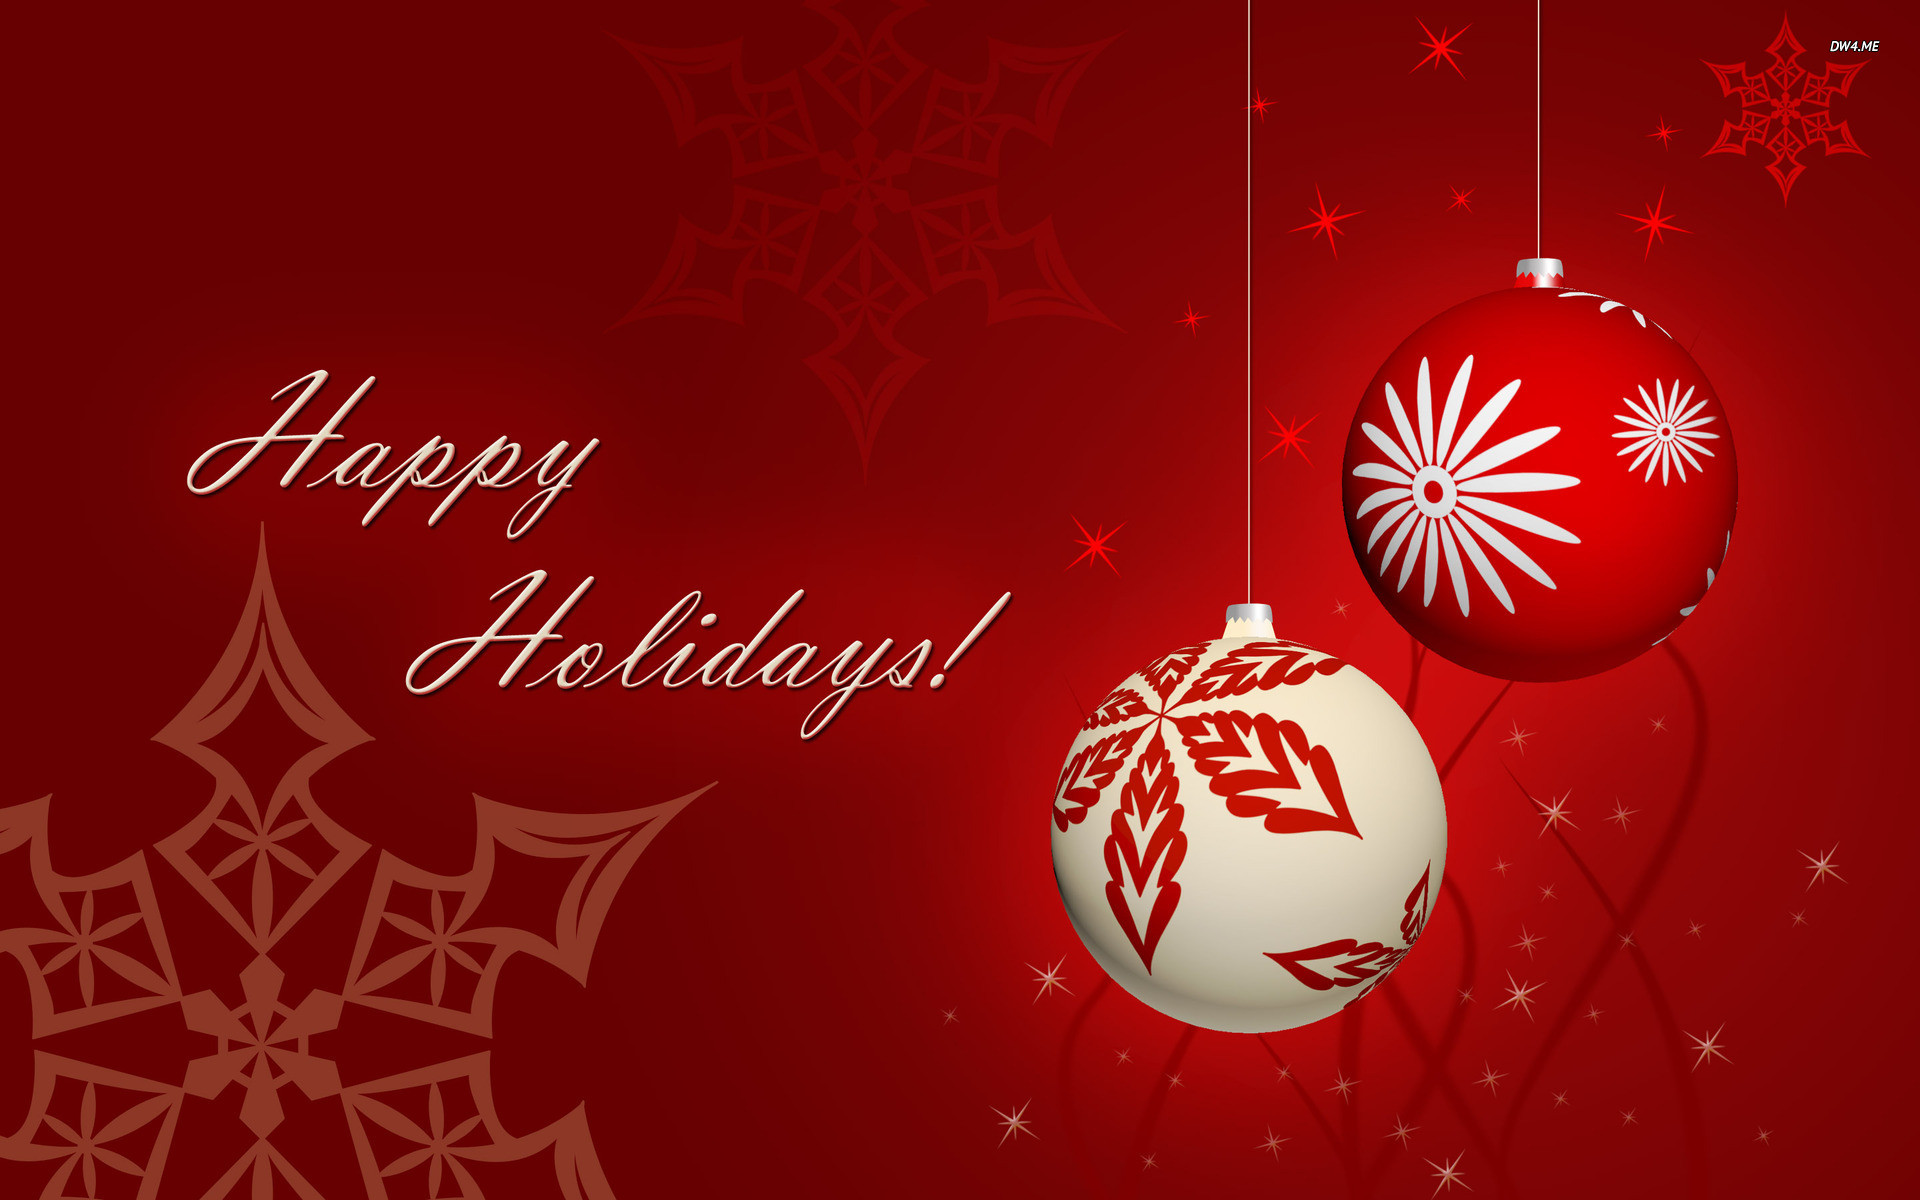 Res: 1920x1200, Happy Holidays wallpaper Holiday wallpapers 1002